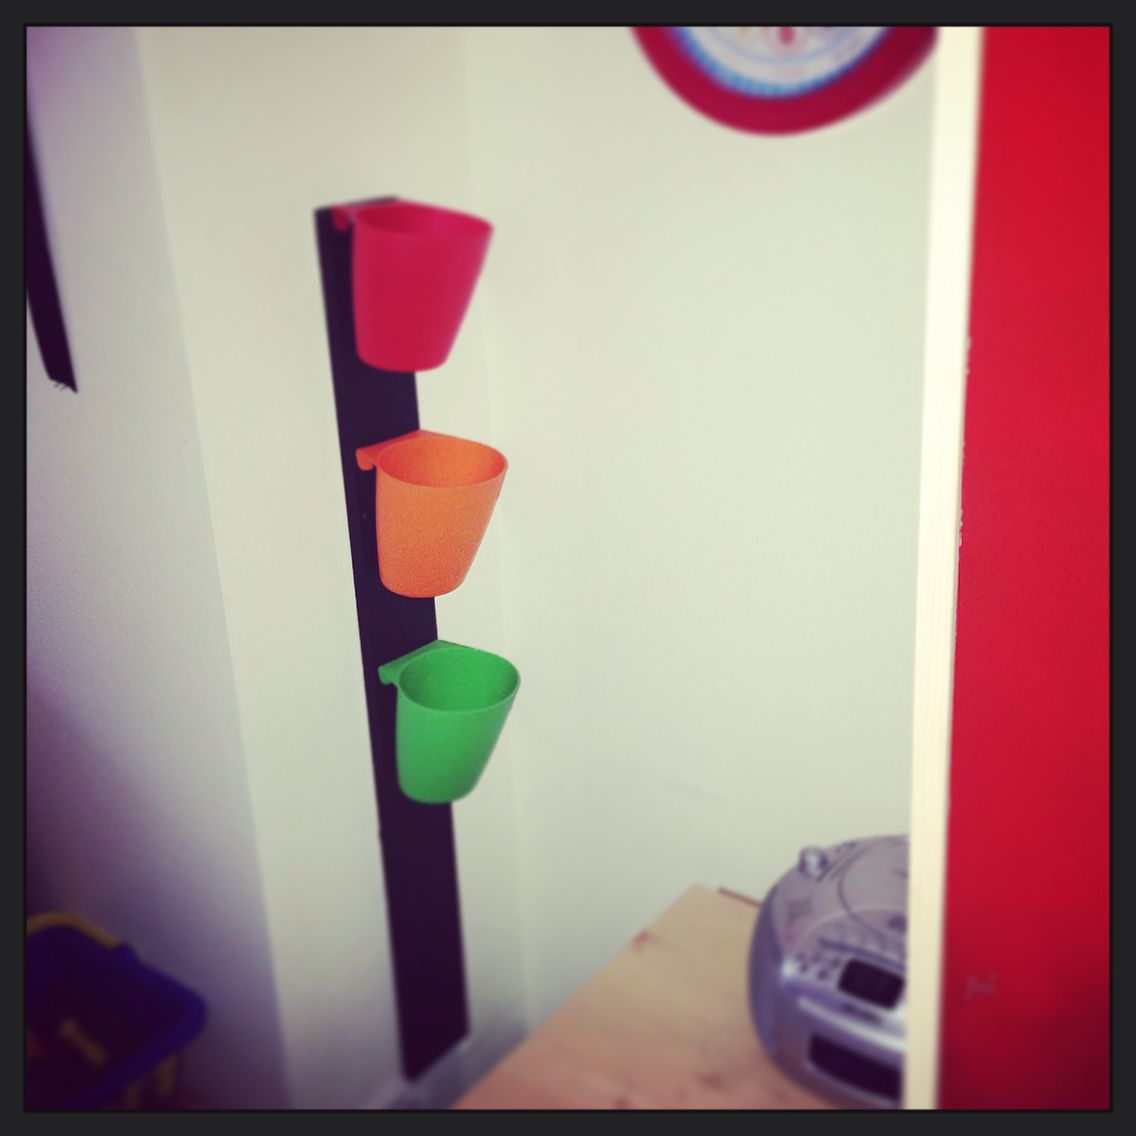 Traffic Light Bedroom Storage For Car Mad Boys Made From A Plank - Traffic light for bedroom